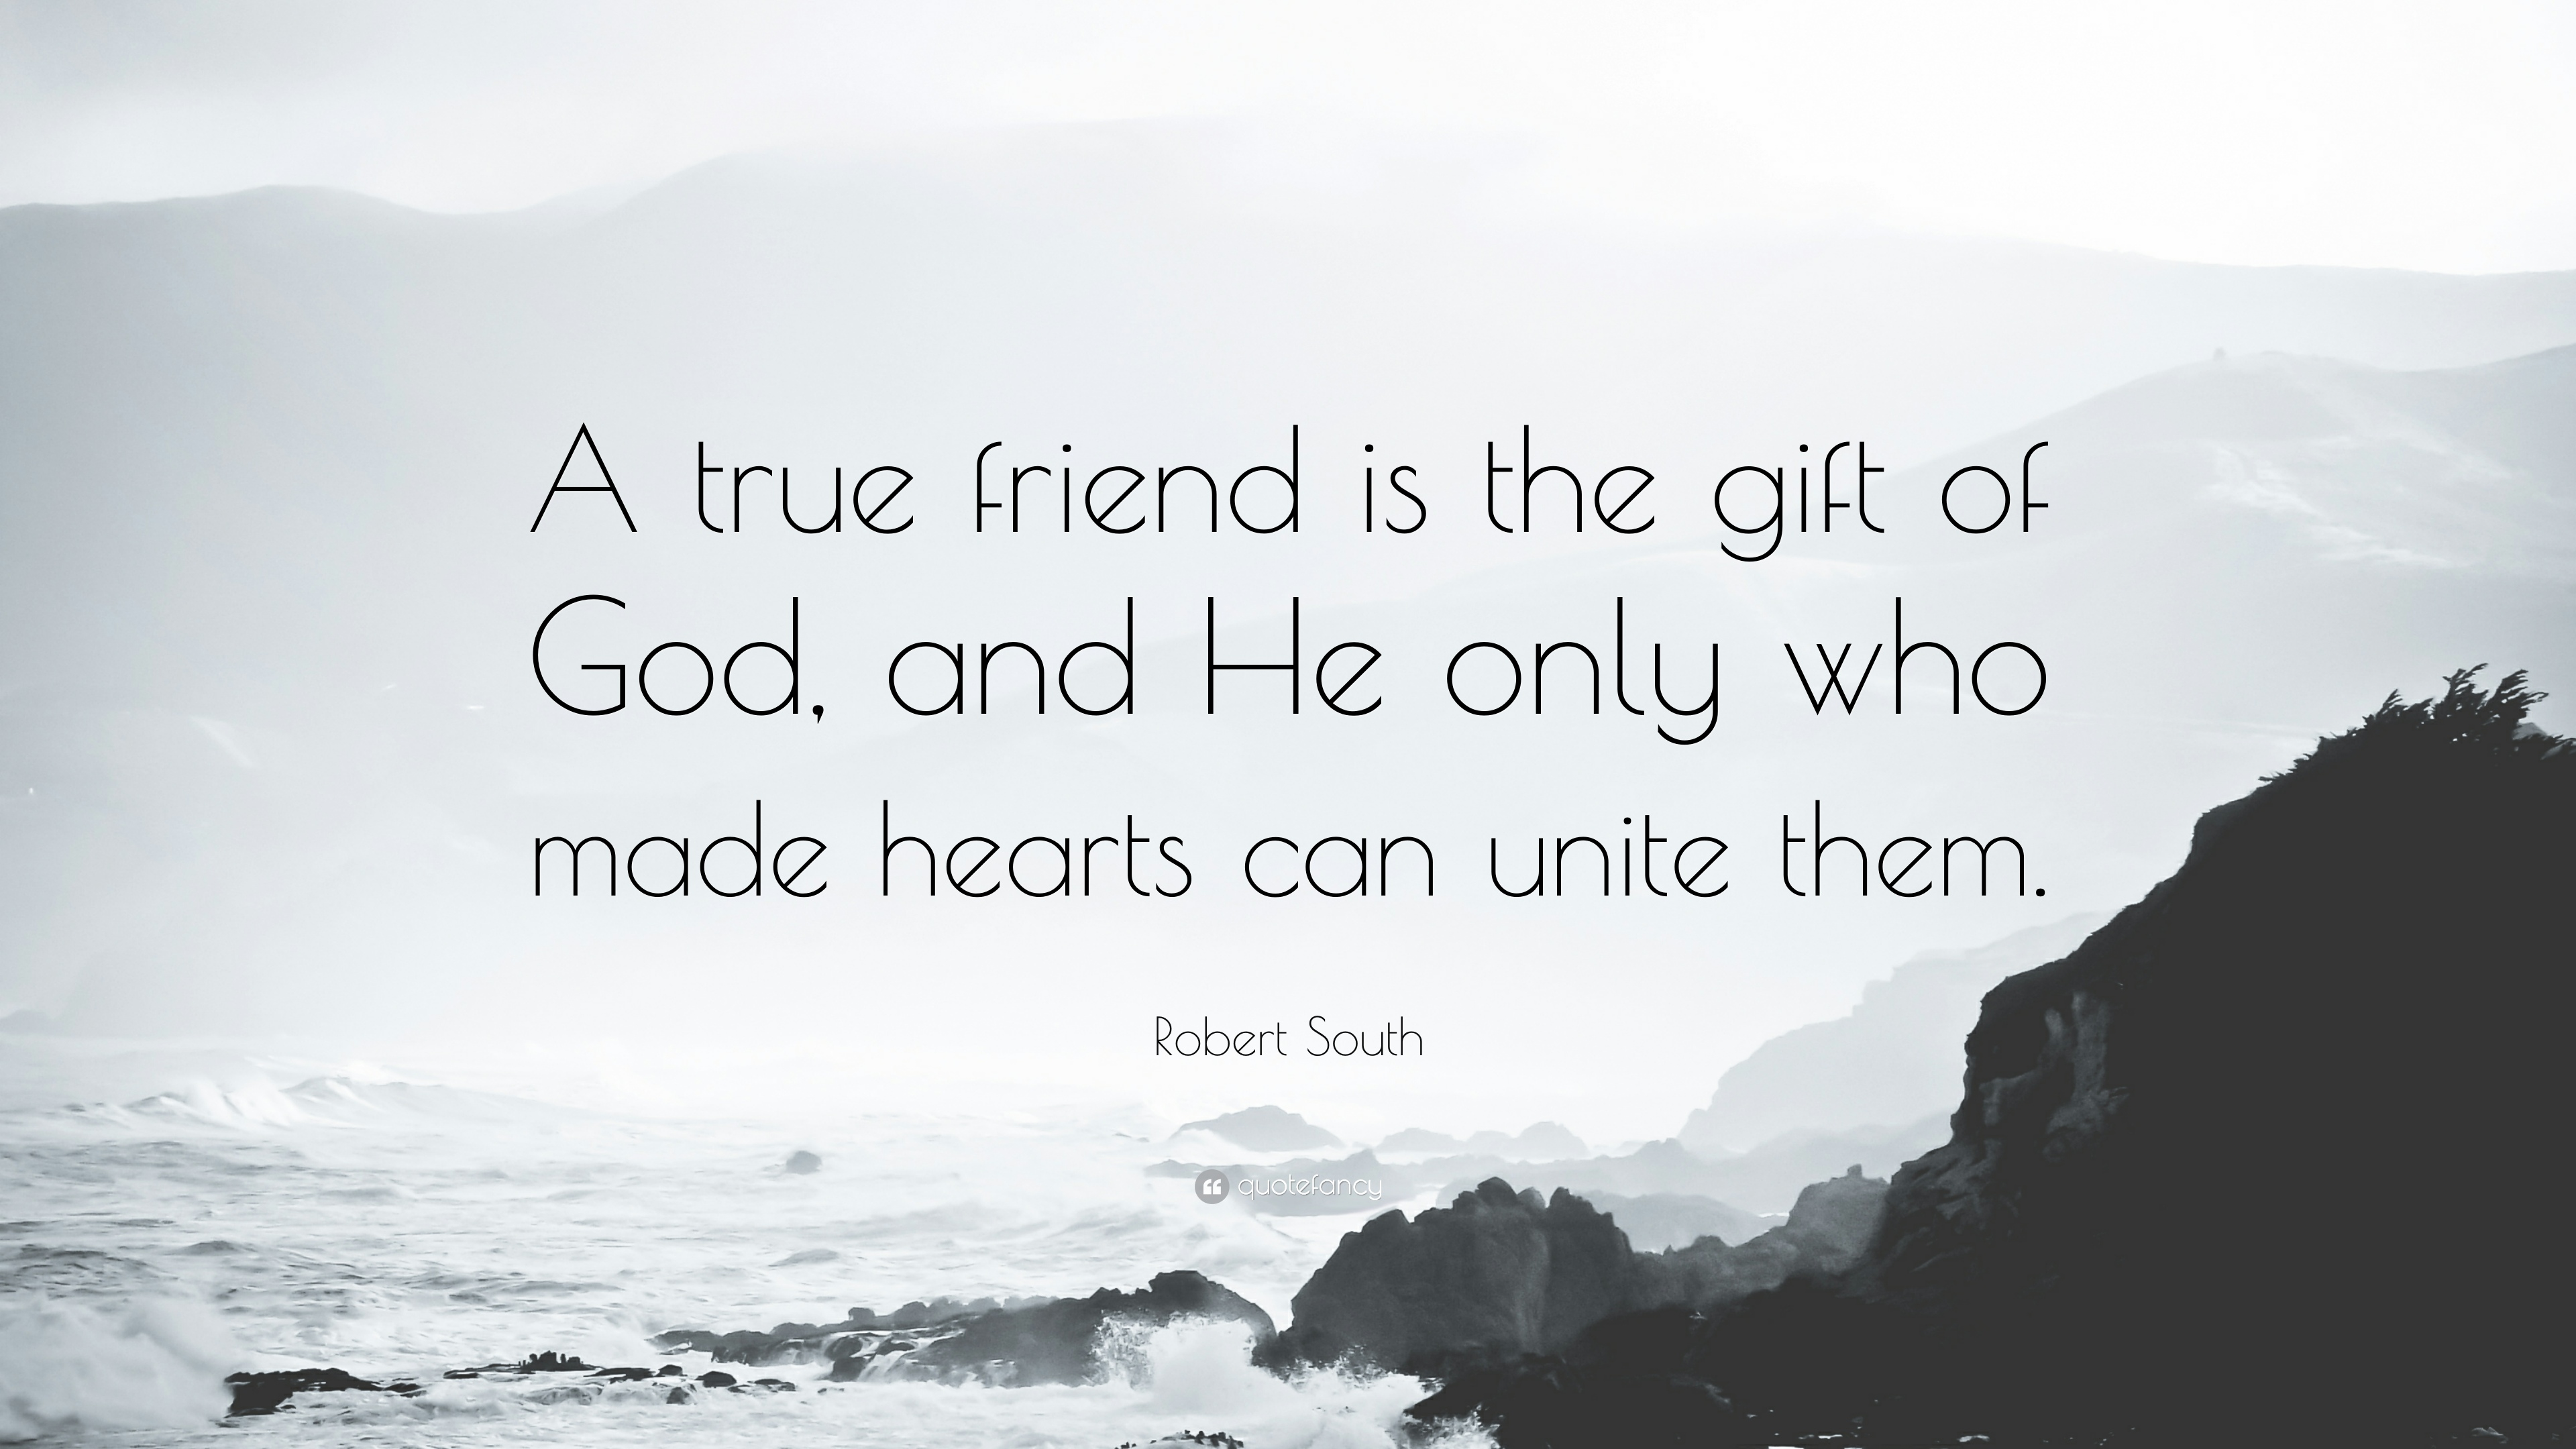 Robert south quote a true friend is the gift of god and he only robert south quote a true friend is the gift of god and he negle Image collections